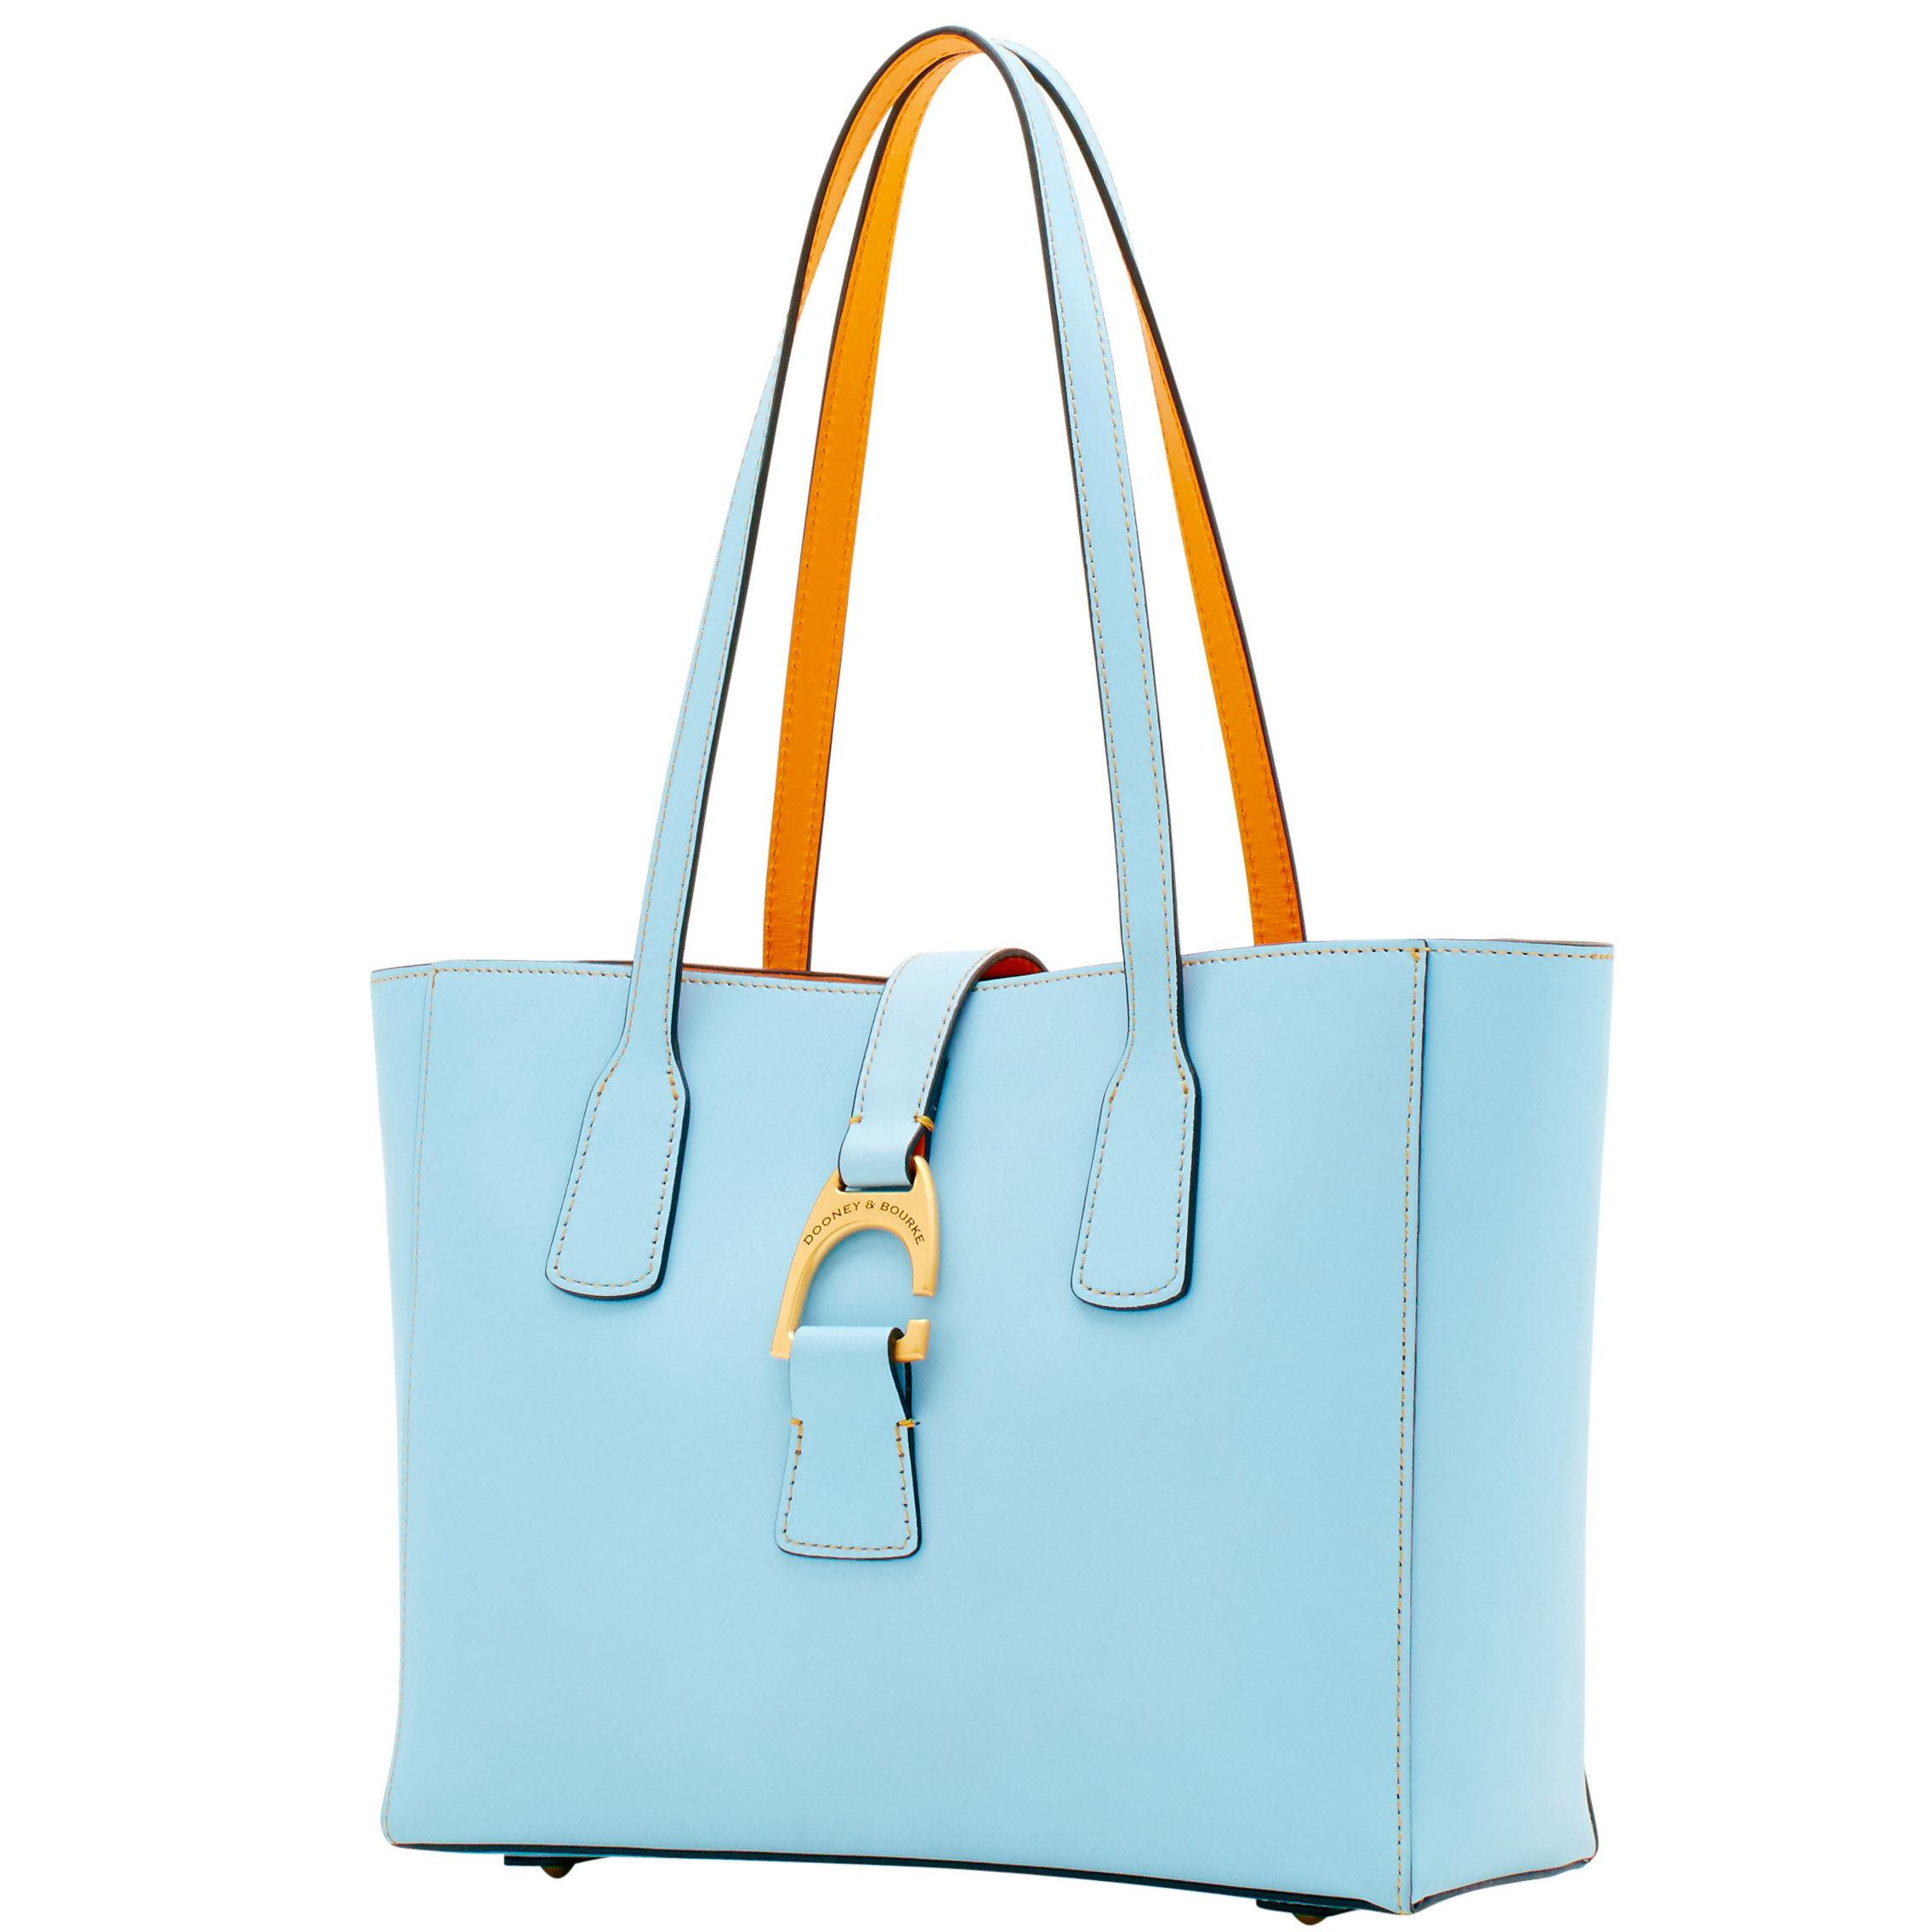 a2730e145128 Lyst - Dooney   Bourke Emerson Small Shannon Tote in Blue - Save ...